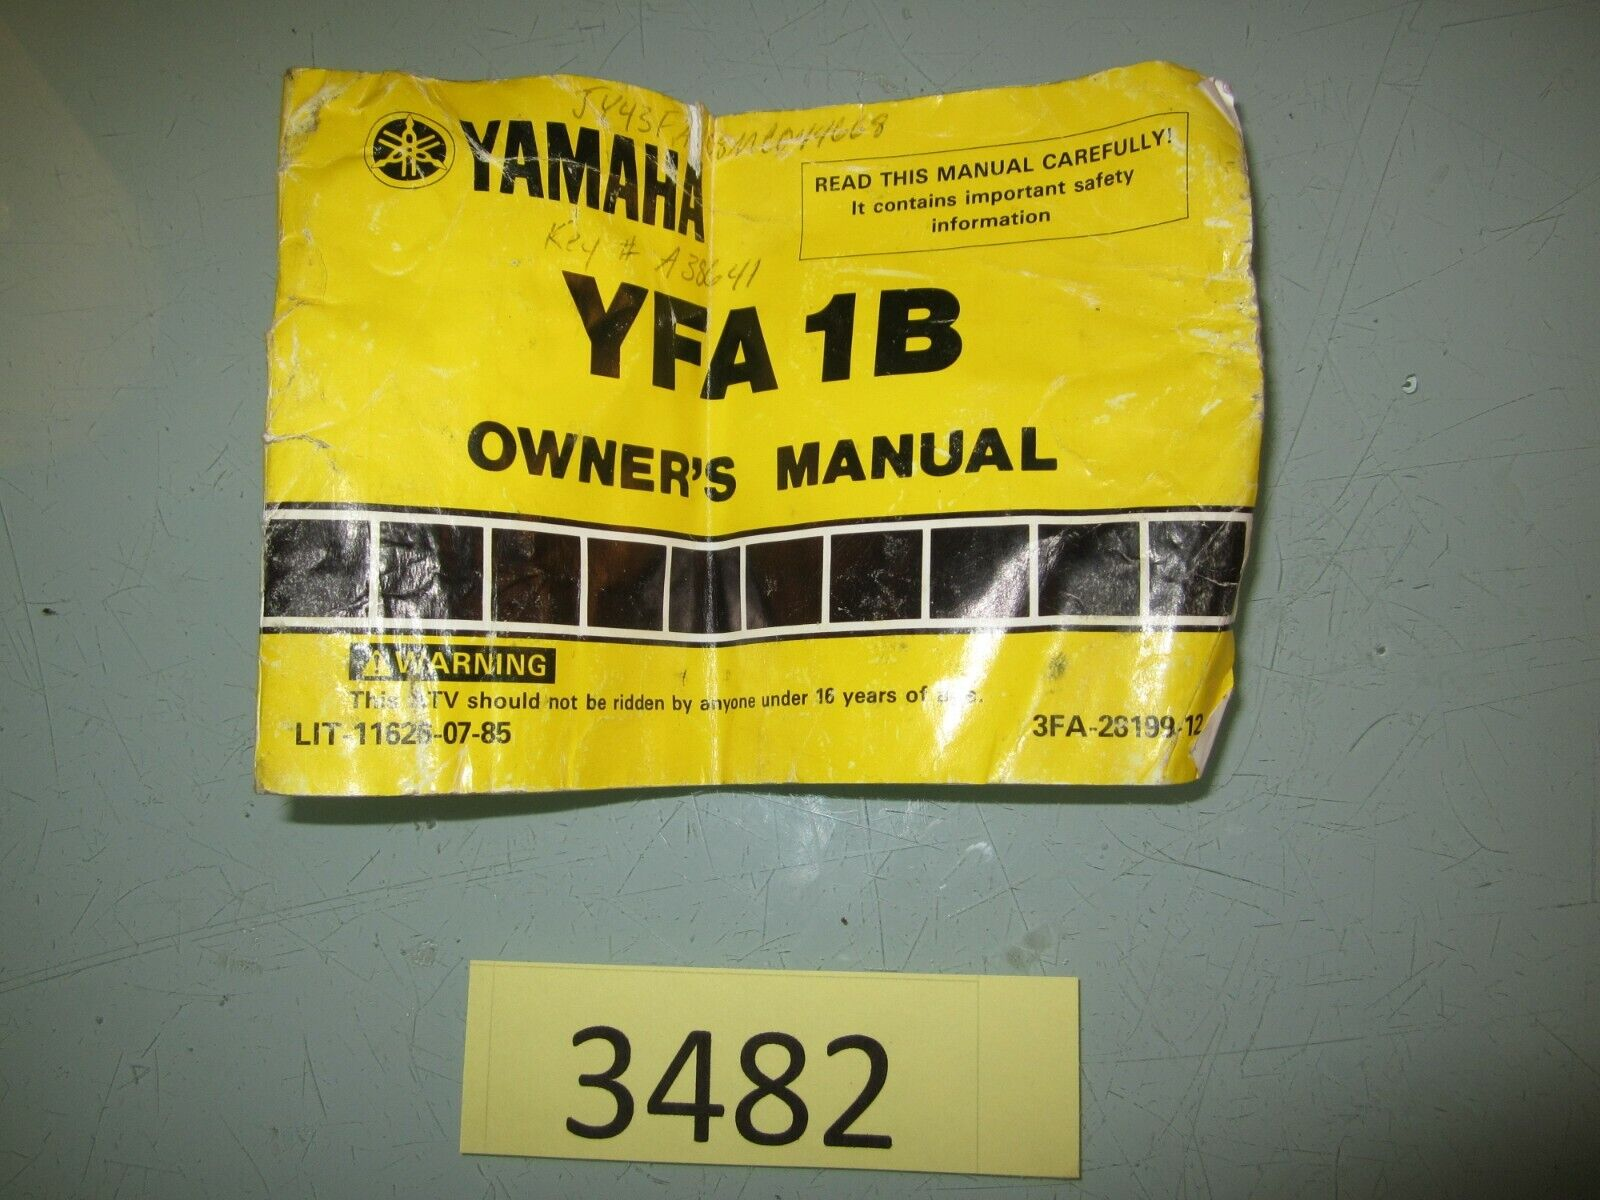 YAMAHA  YFA1B  1993  OWNERS  MANUAL  LIT-11626-07-85  3FA-28199-12 breeze 125